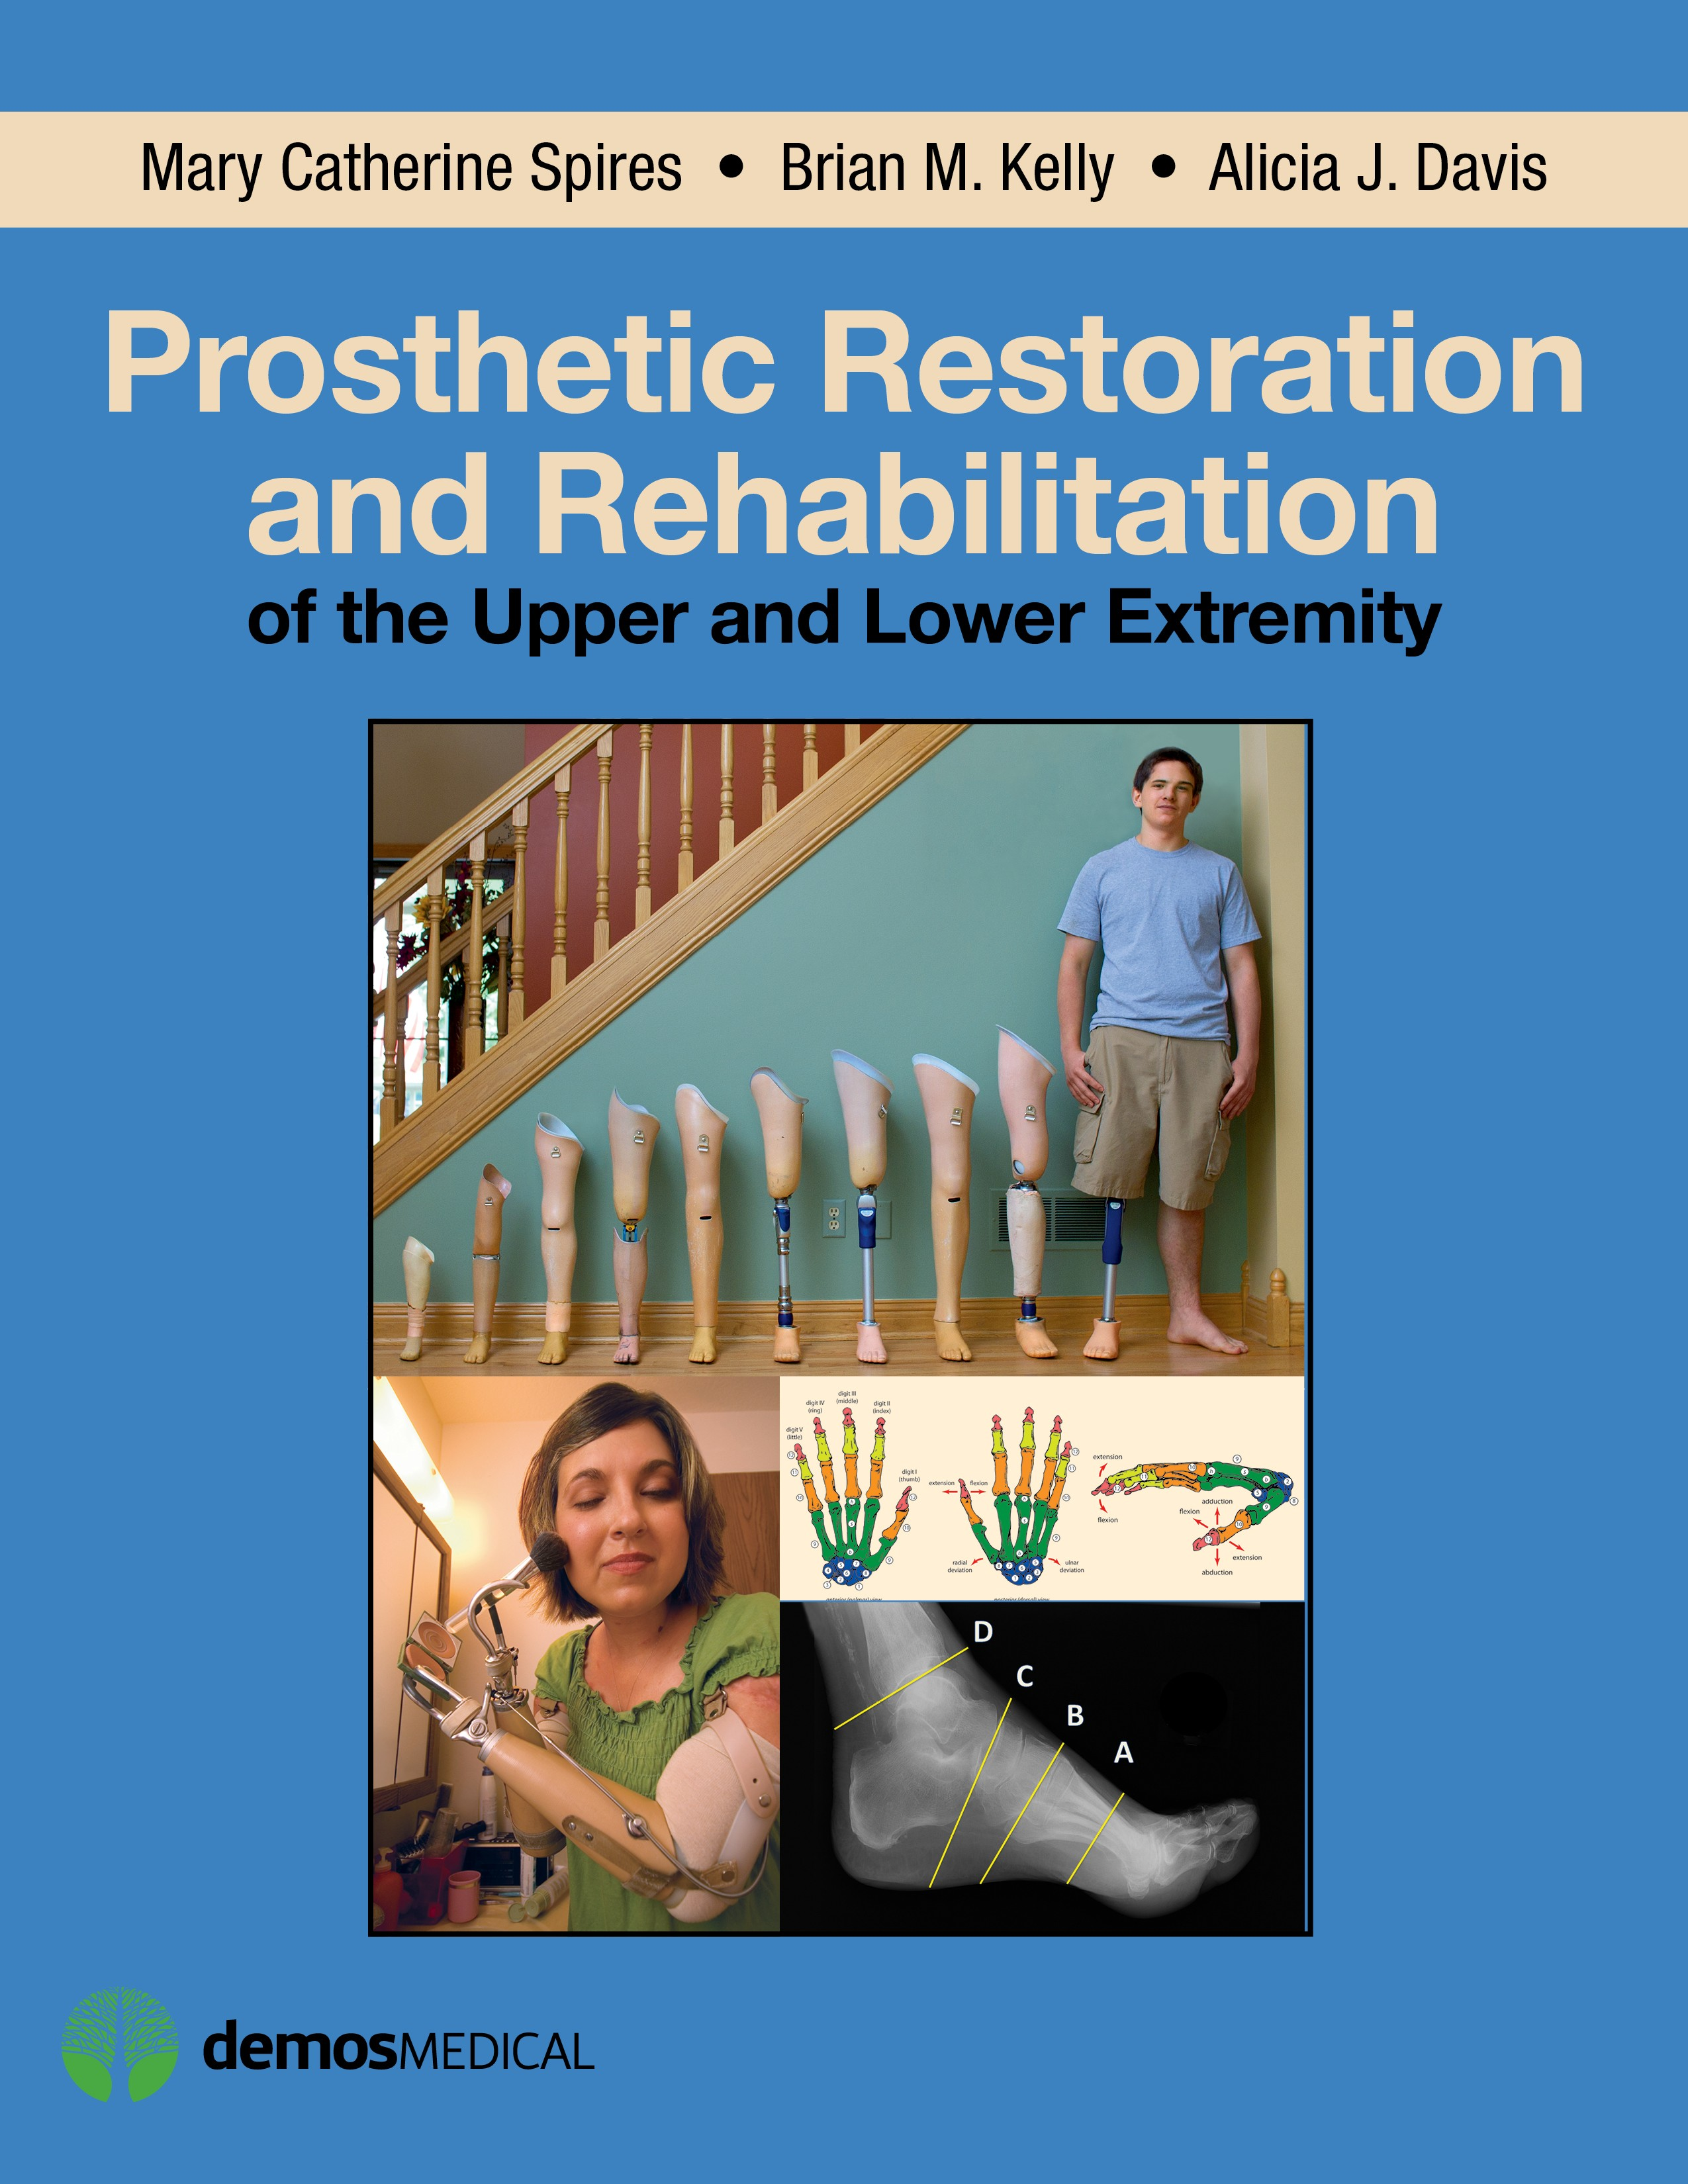 Prosthetic Restoration & Rehabilitation of the Upper &Lower Extremity